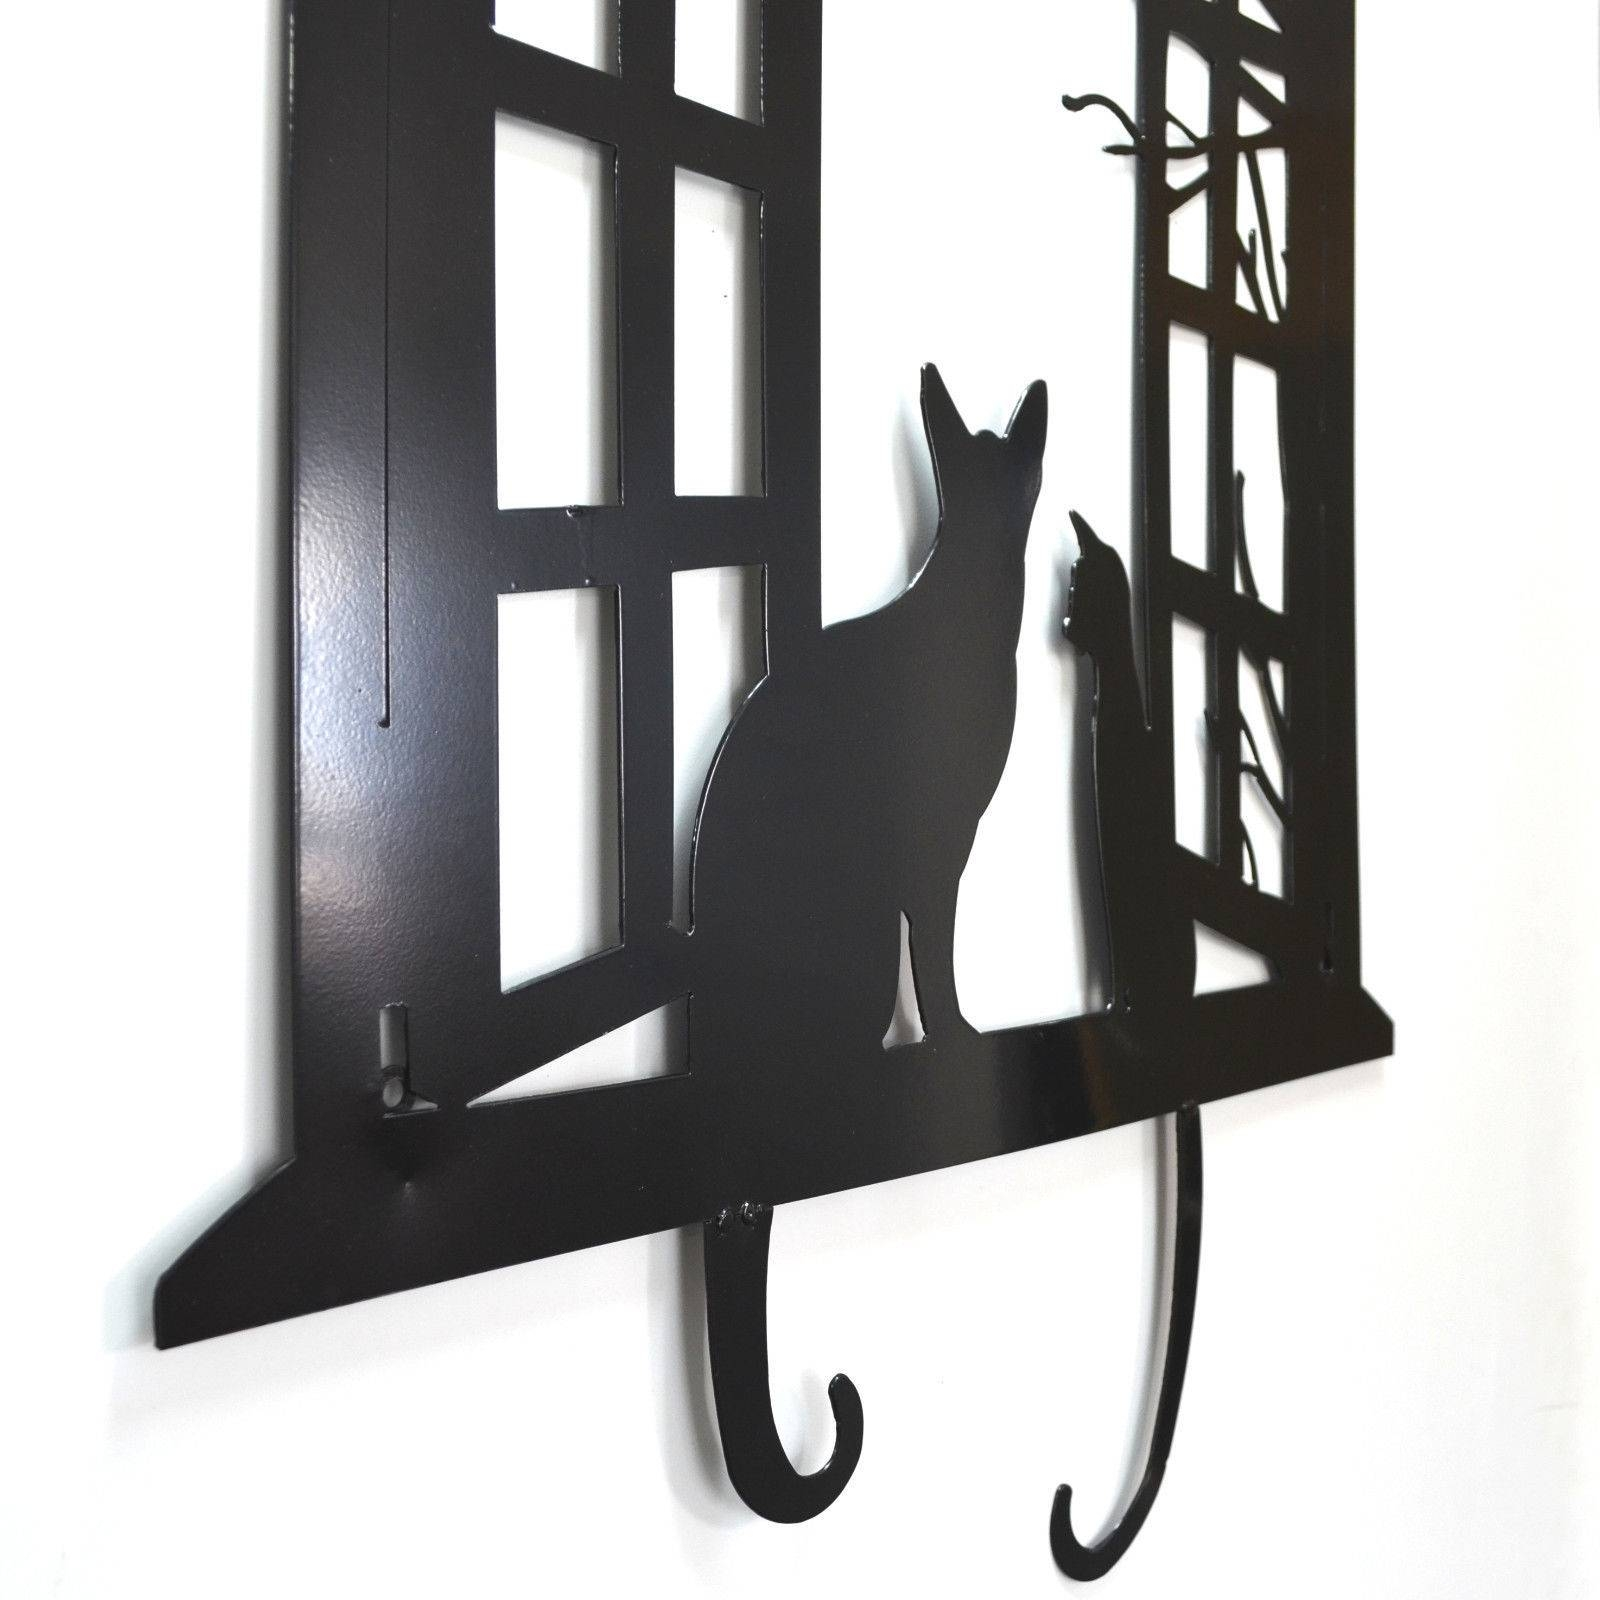 Cats In Window Lasercut Metal Wall Art 73cm With Regard To Most Recent Cat Metal Wall Art (View 7 of 20)